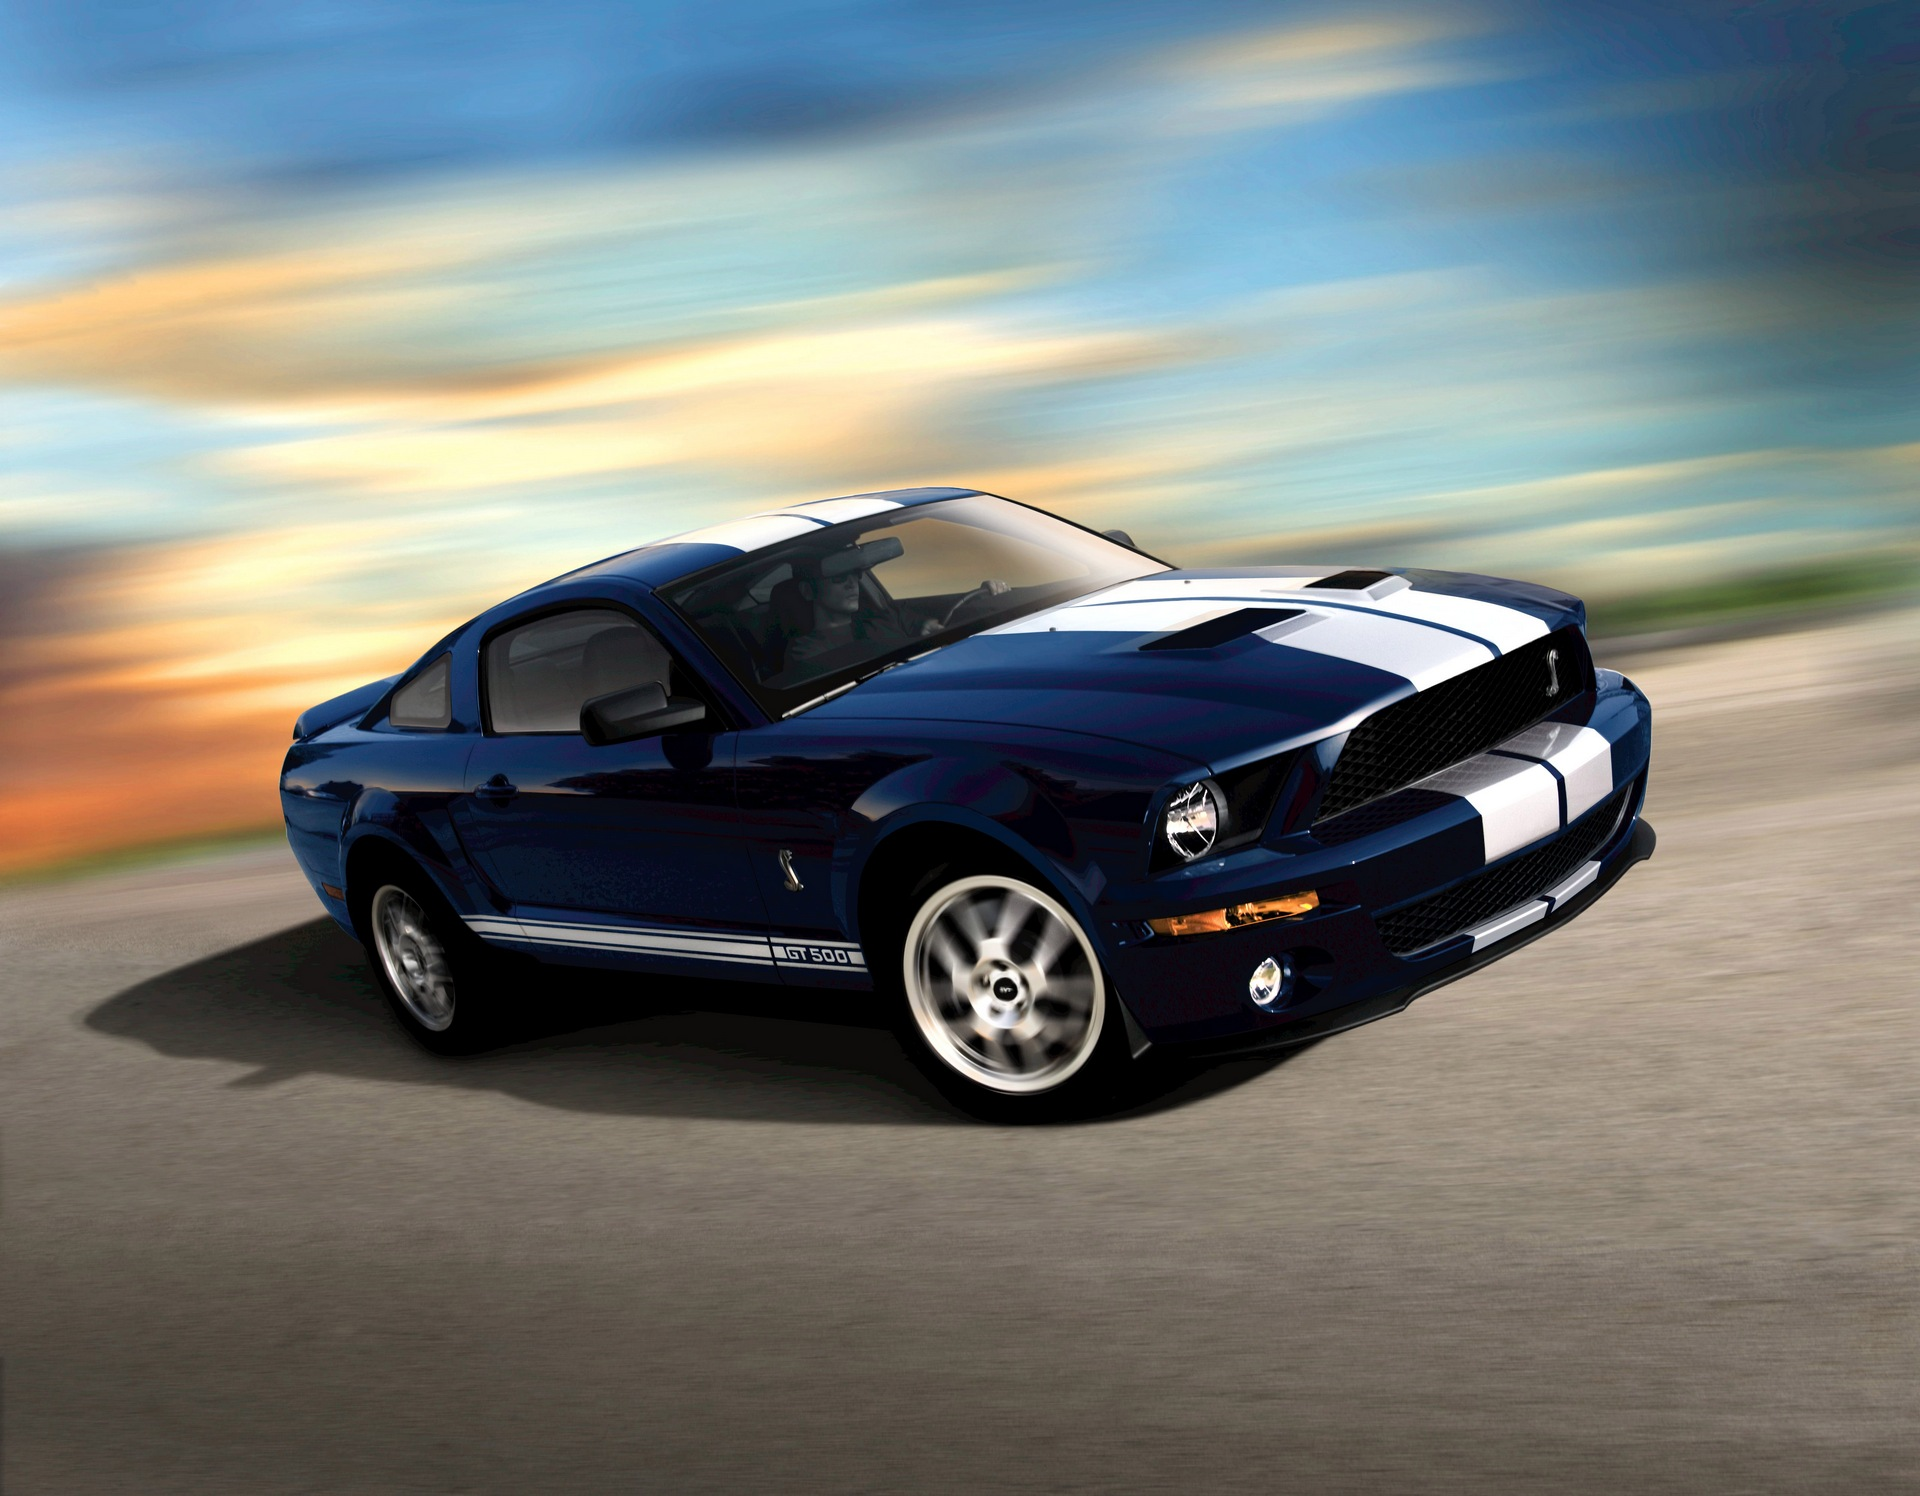 2008 shelby mustang gt500. Black Bedroom Furniture Sets. Home Design Ideas